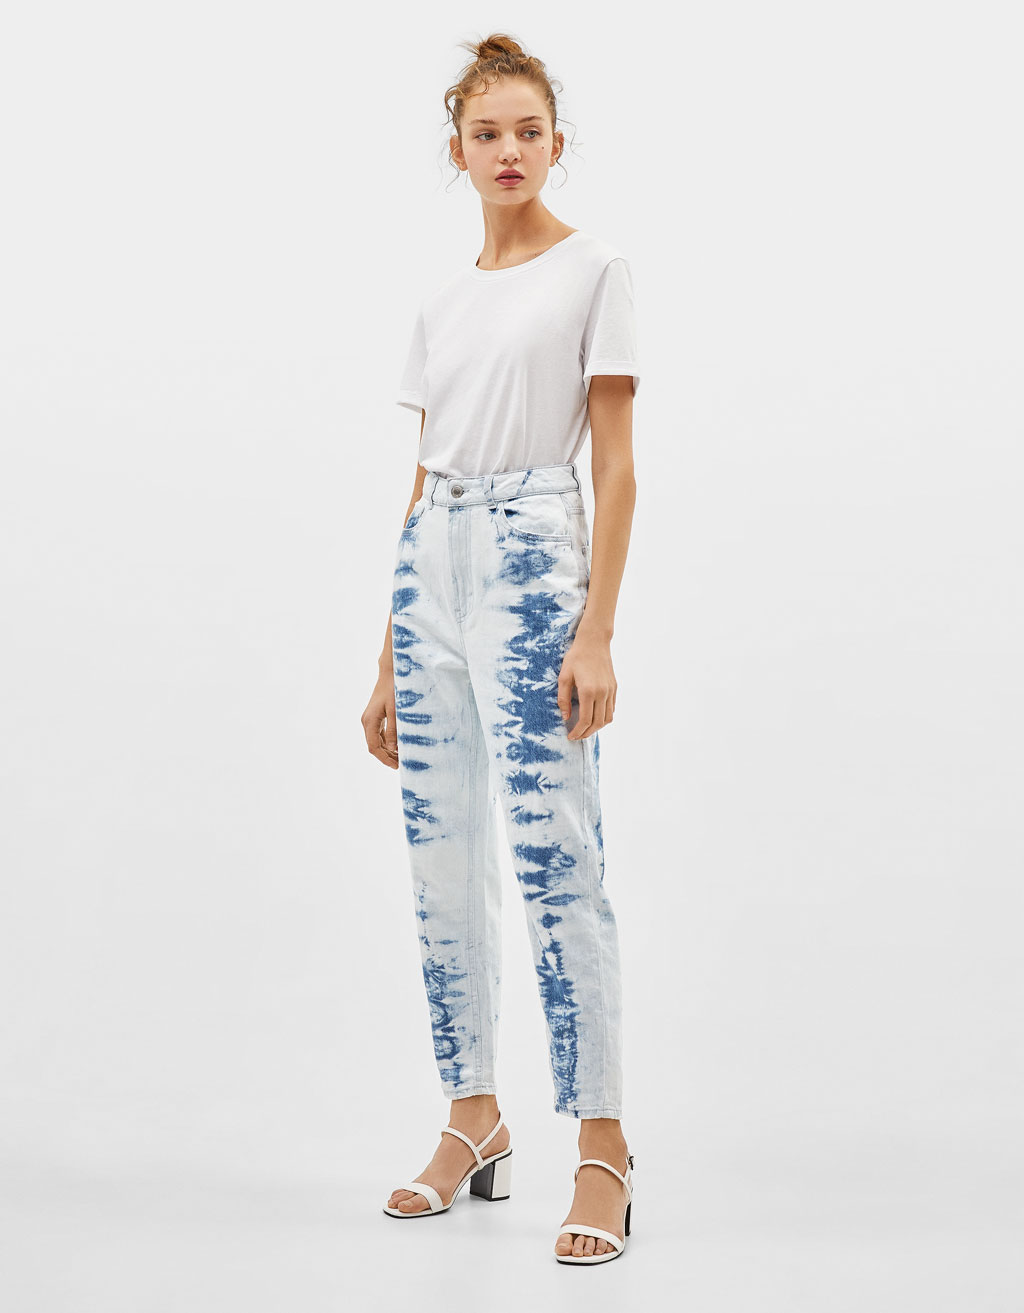 High waist tie-dye mom jeans